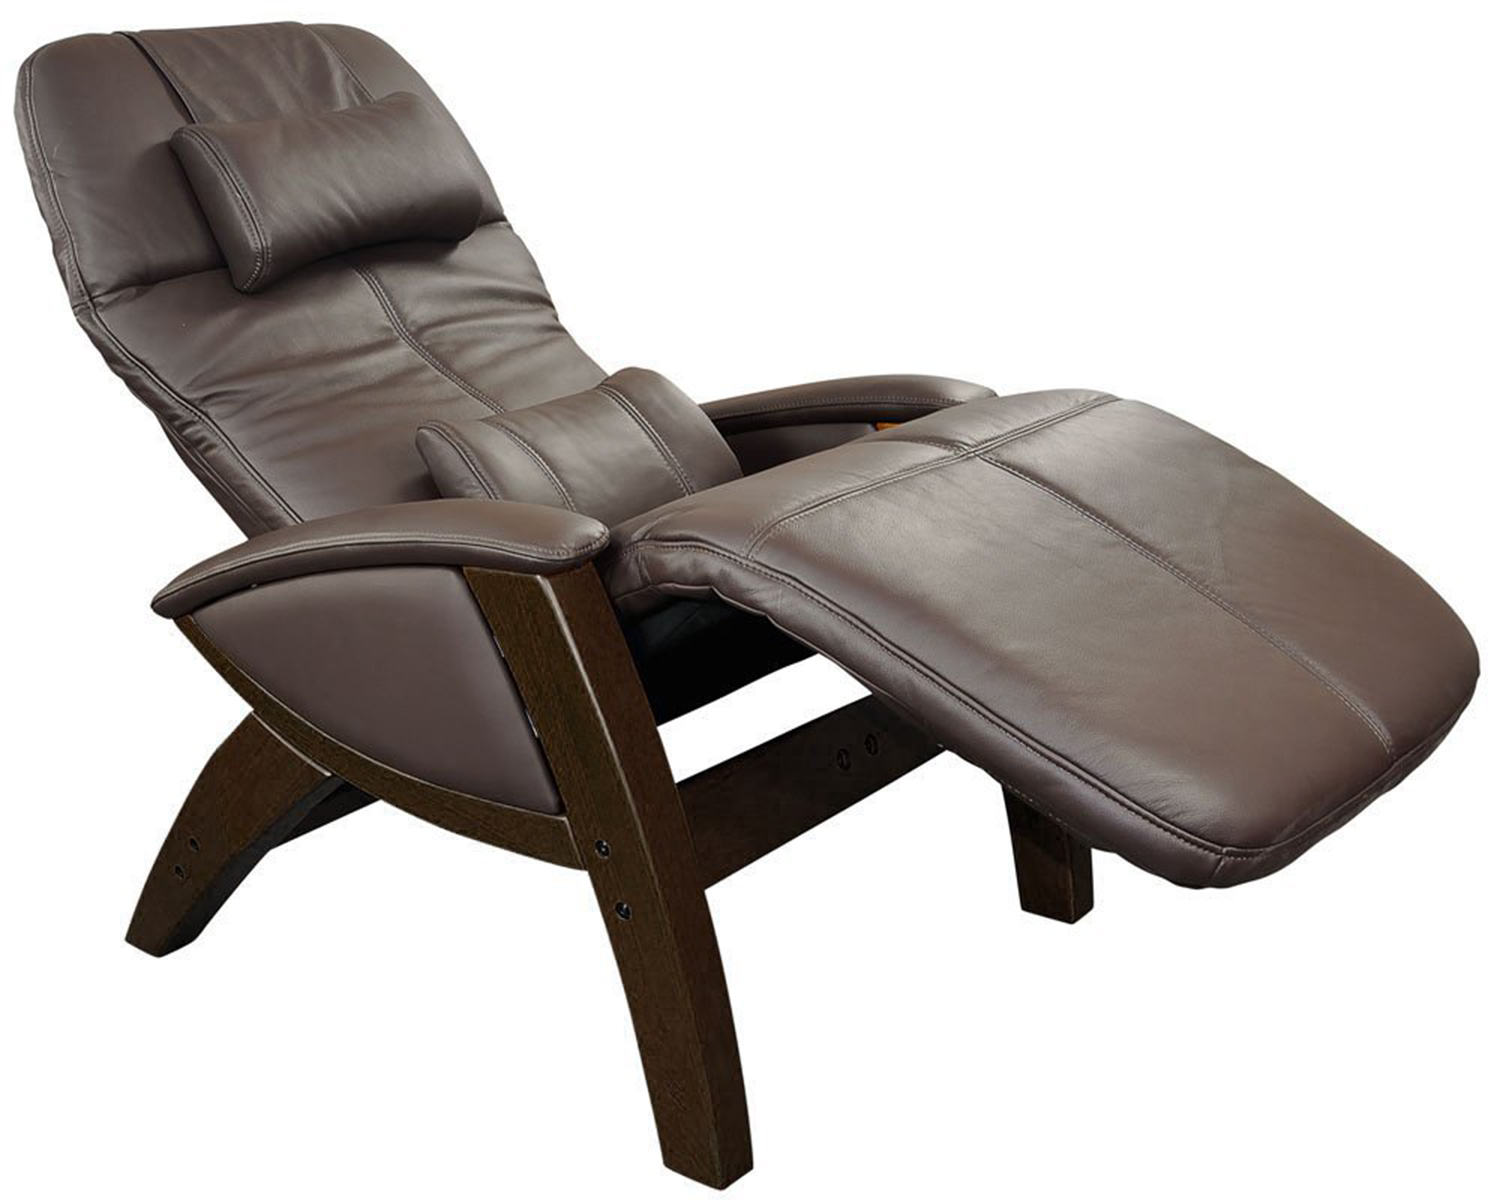 zero gravity chair recliner patio chairs on sale svago sv 400 405 lusso